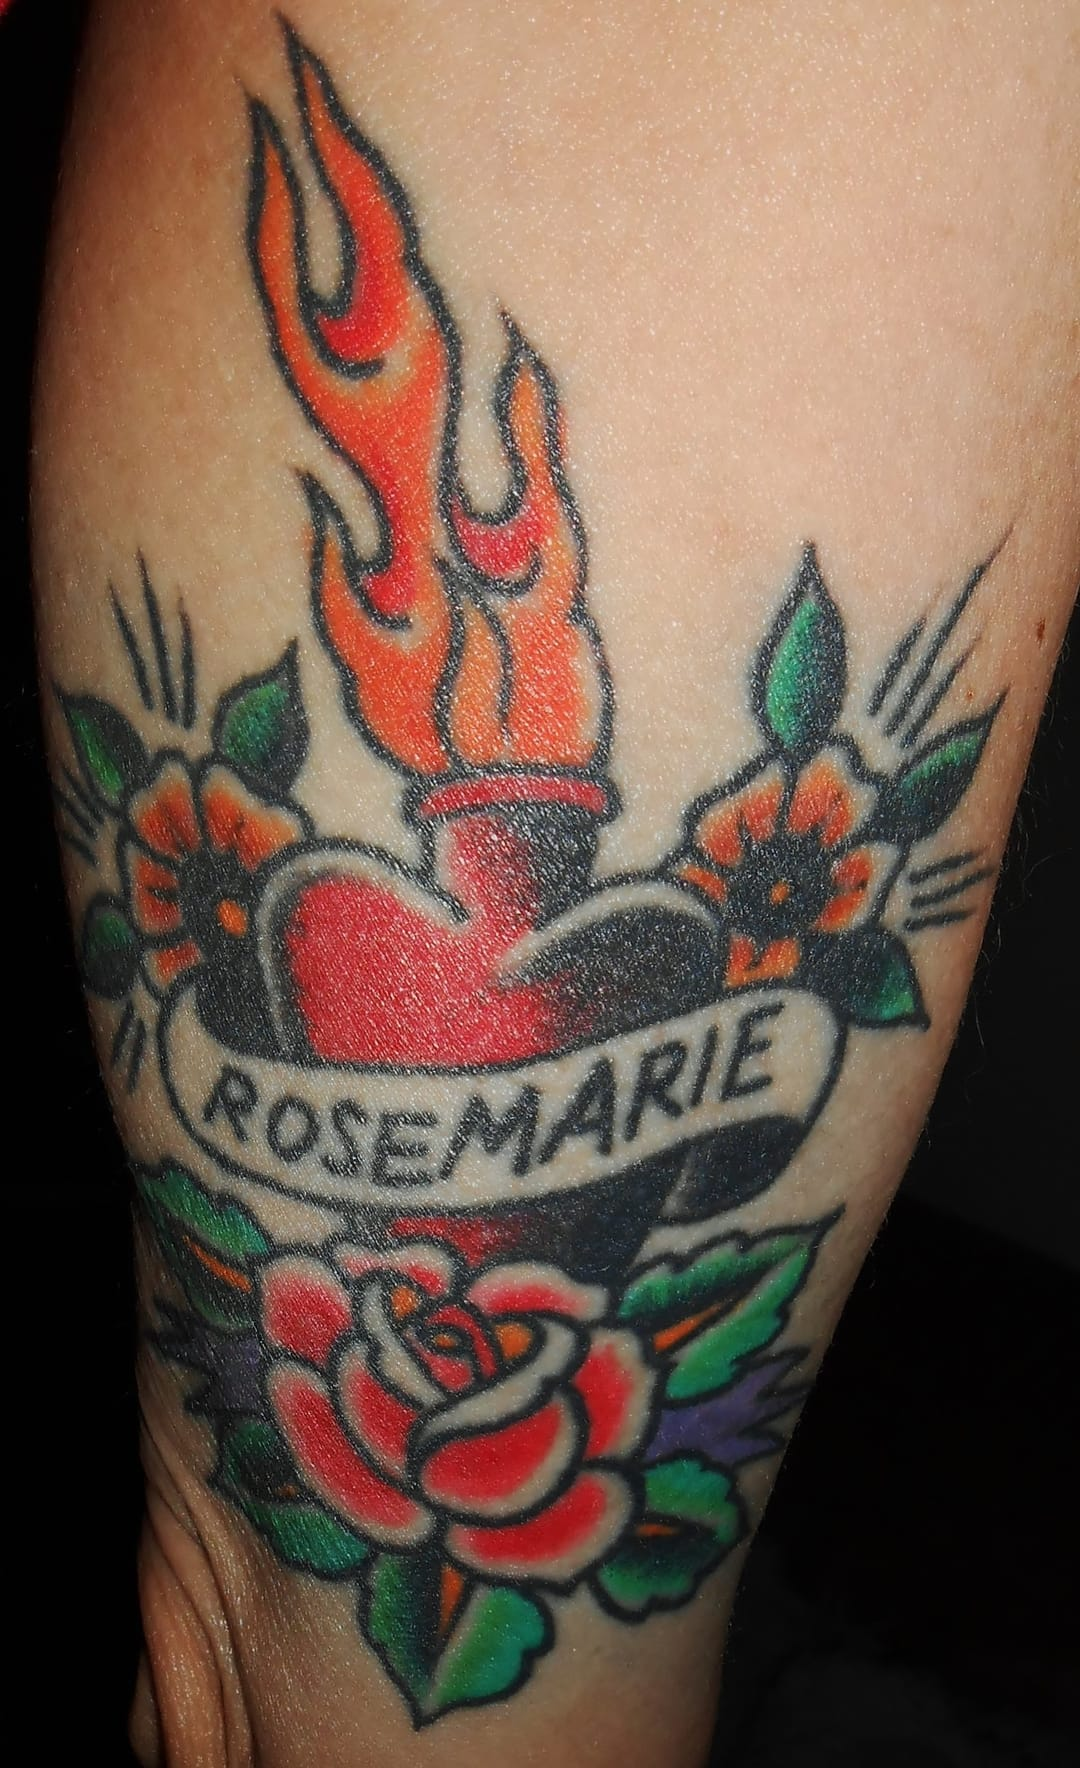 I too, don ink in honor of my mother, Rosemarie. By DROSS, DamionRossTattoo, InvisibleNYC